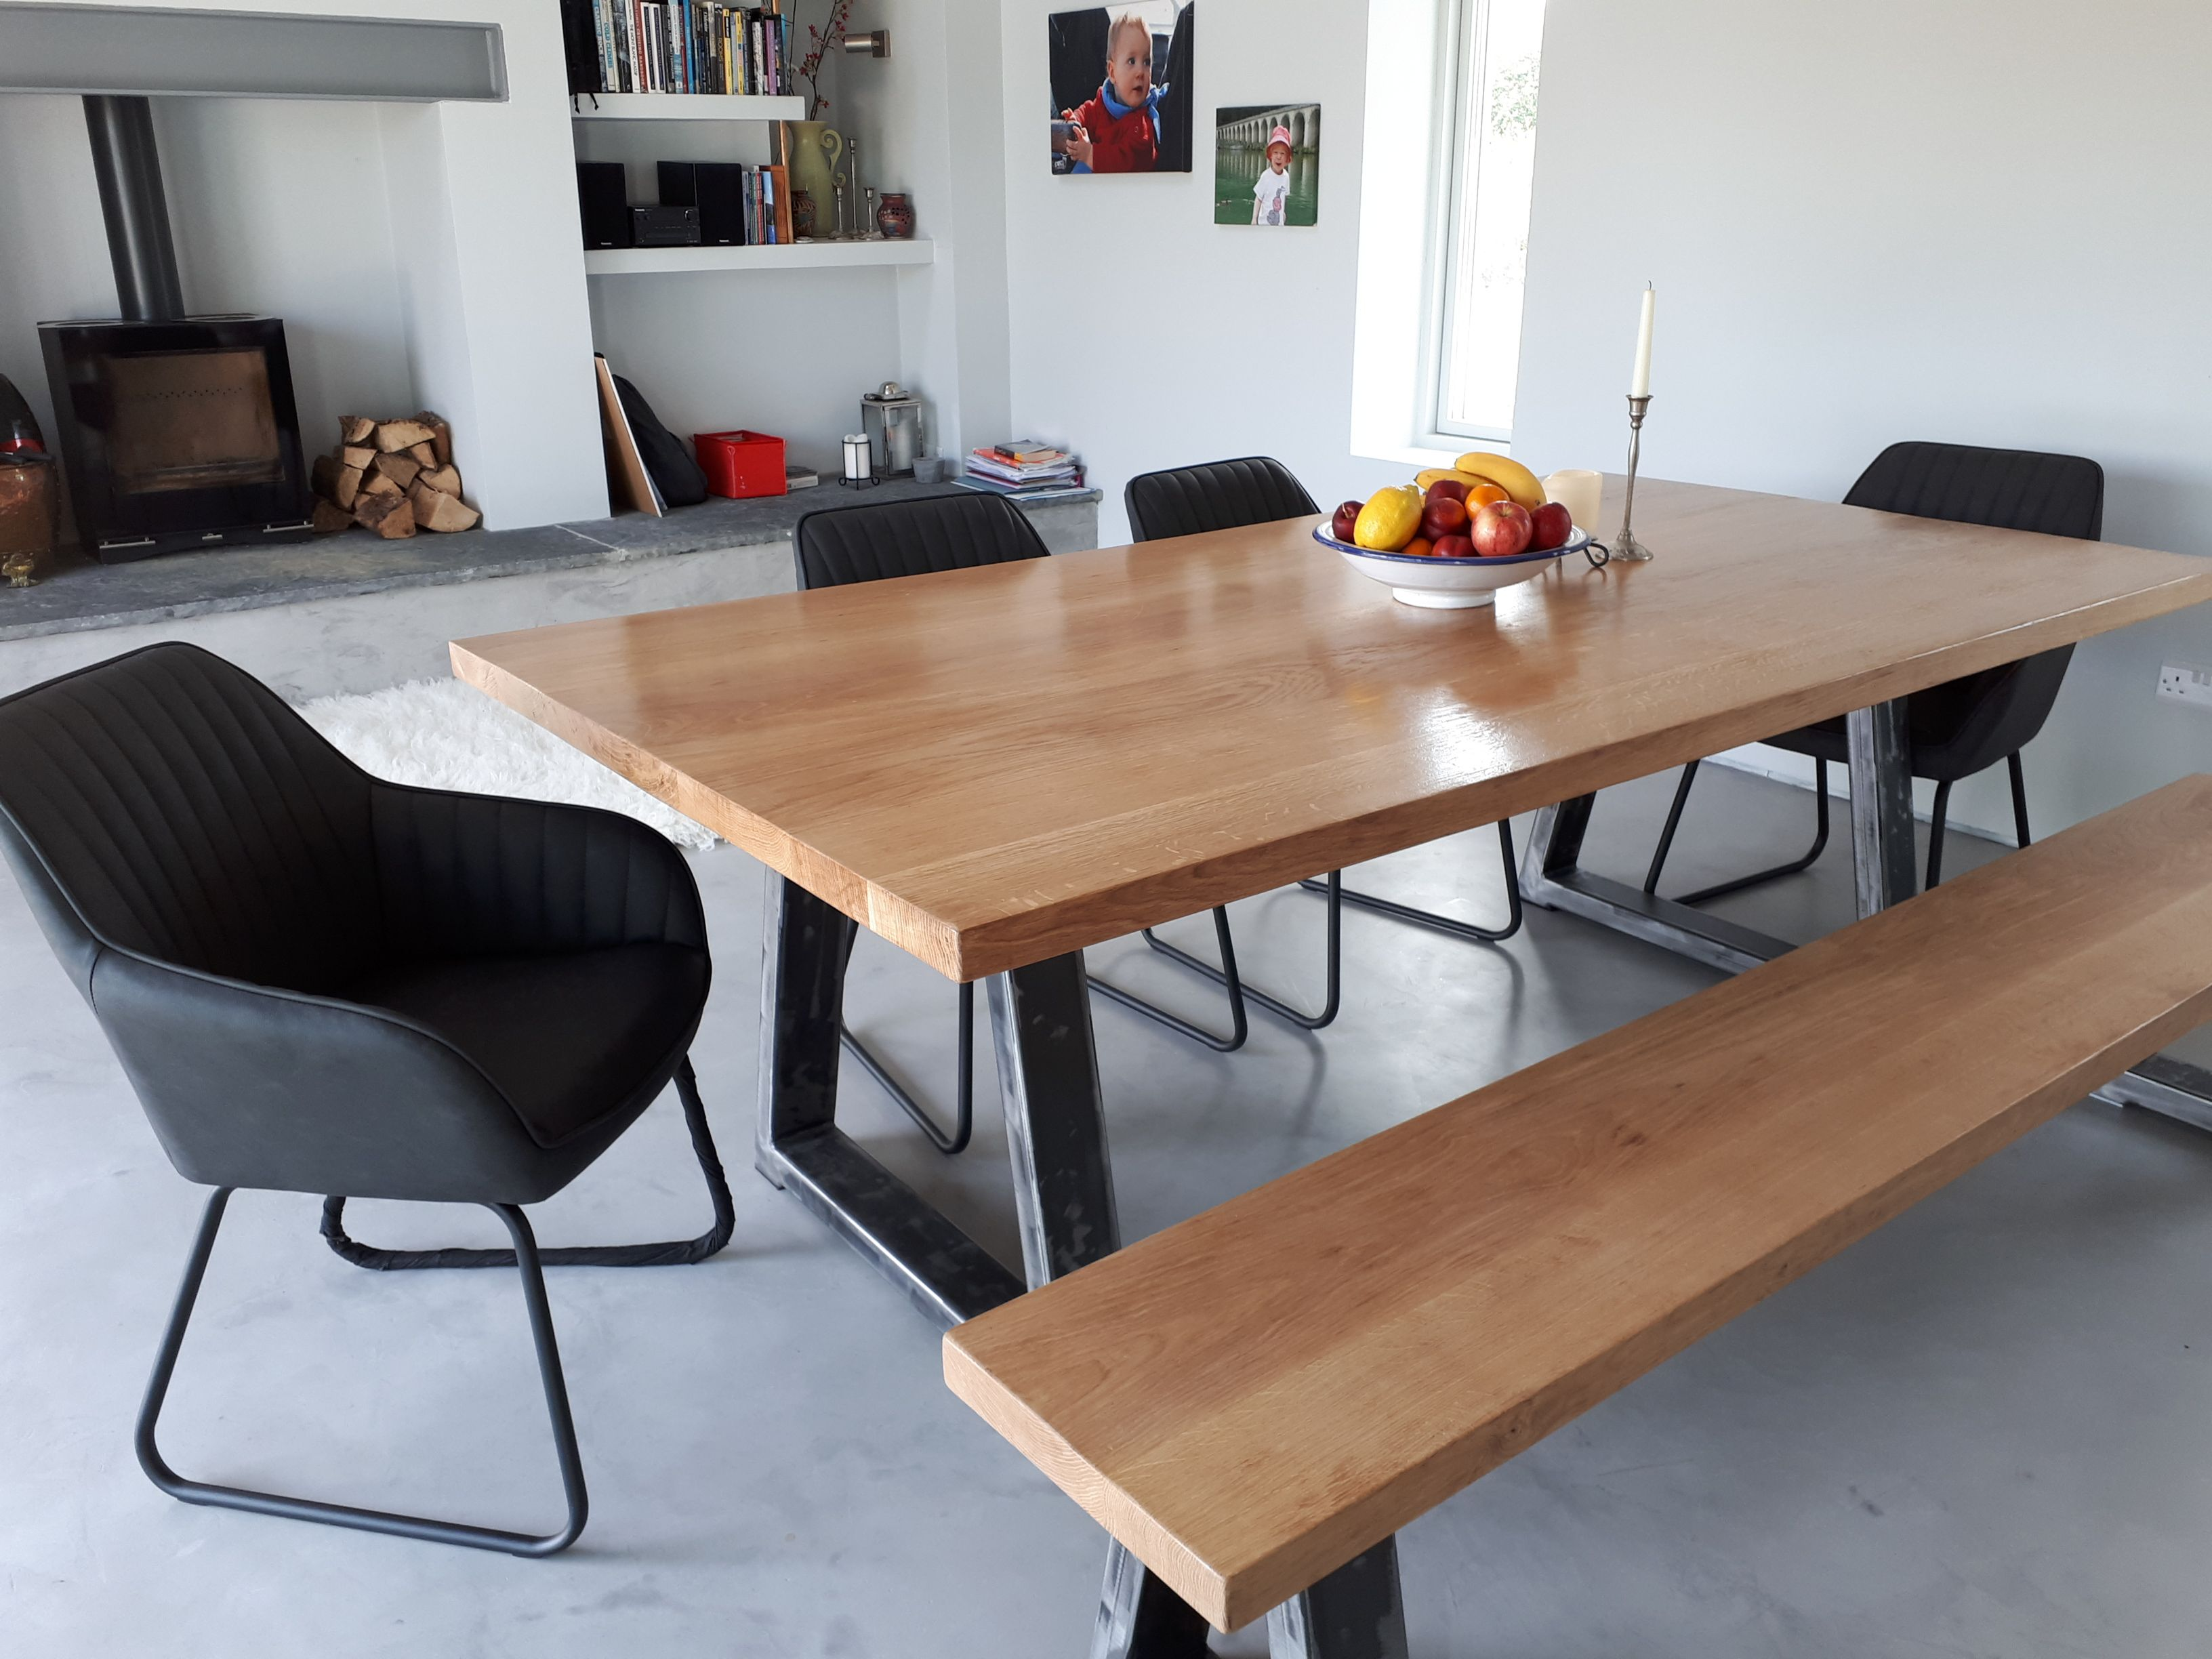 This beautiful image was sent by the client , showing our table